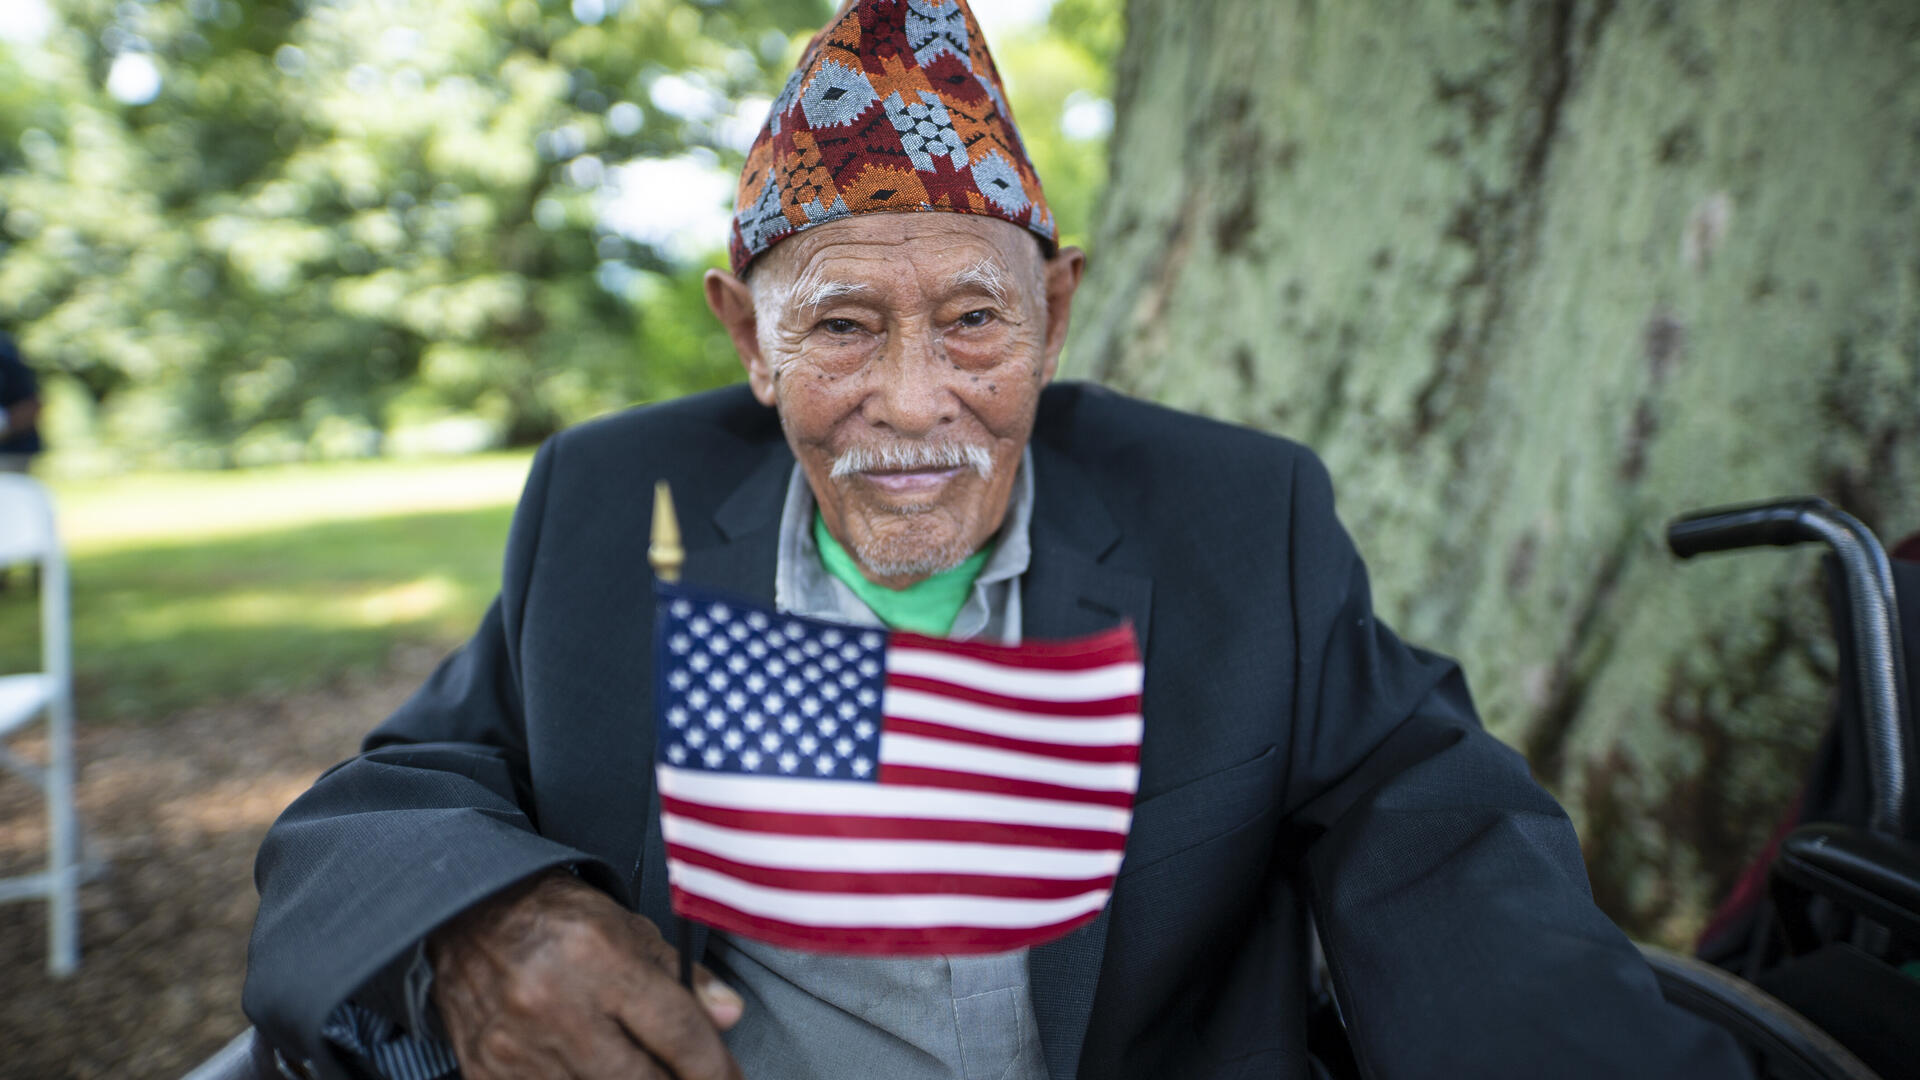 A seated refugee man holds a flag at a citizenship ceremony in Virginia